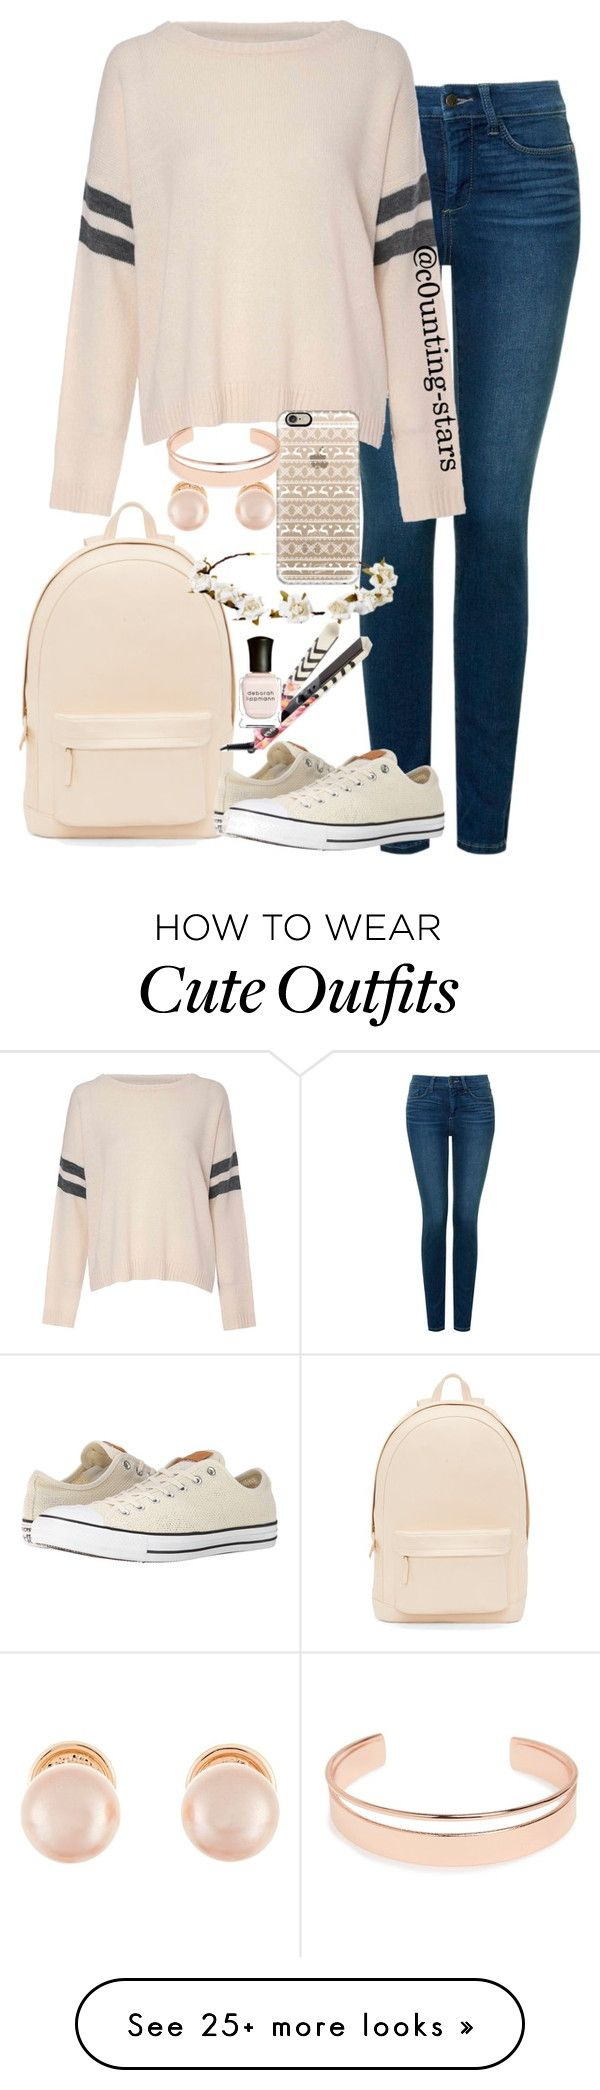 """::cute winter school outfit"" by c0unting-stars on Polyvore featuring PB 0110, NYDJ, Glamorous, Converse, Cult Gaia, Casetify, Kenneth Jay Lane, Leith, Eva NYC and Deborah Lippmann"